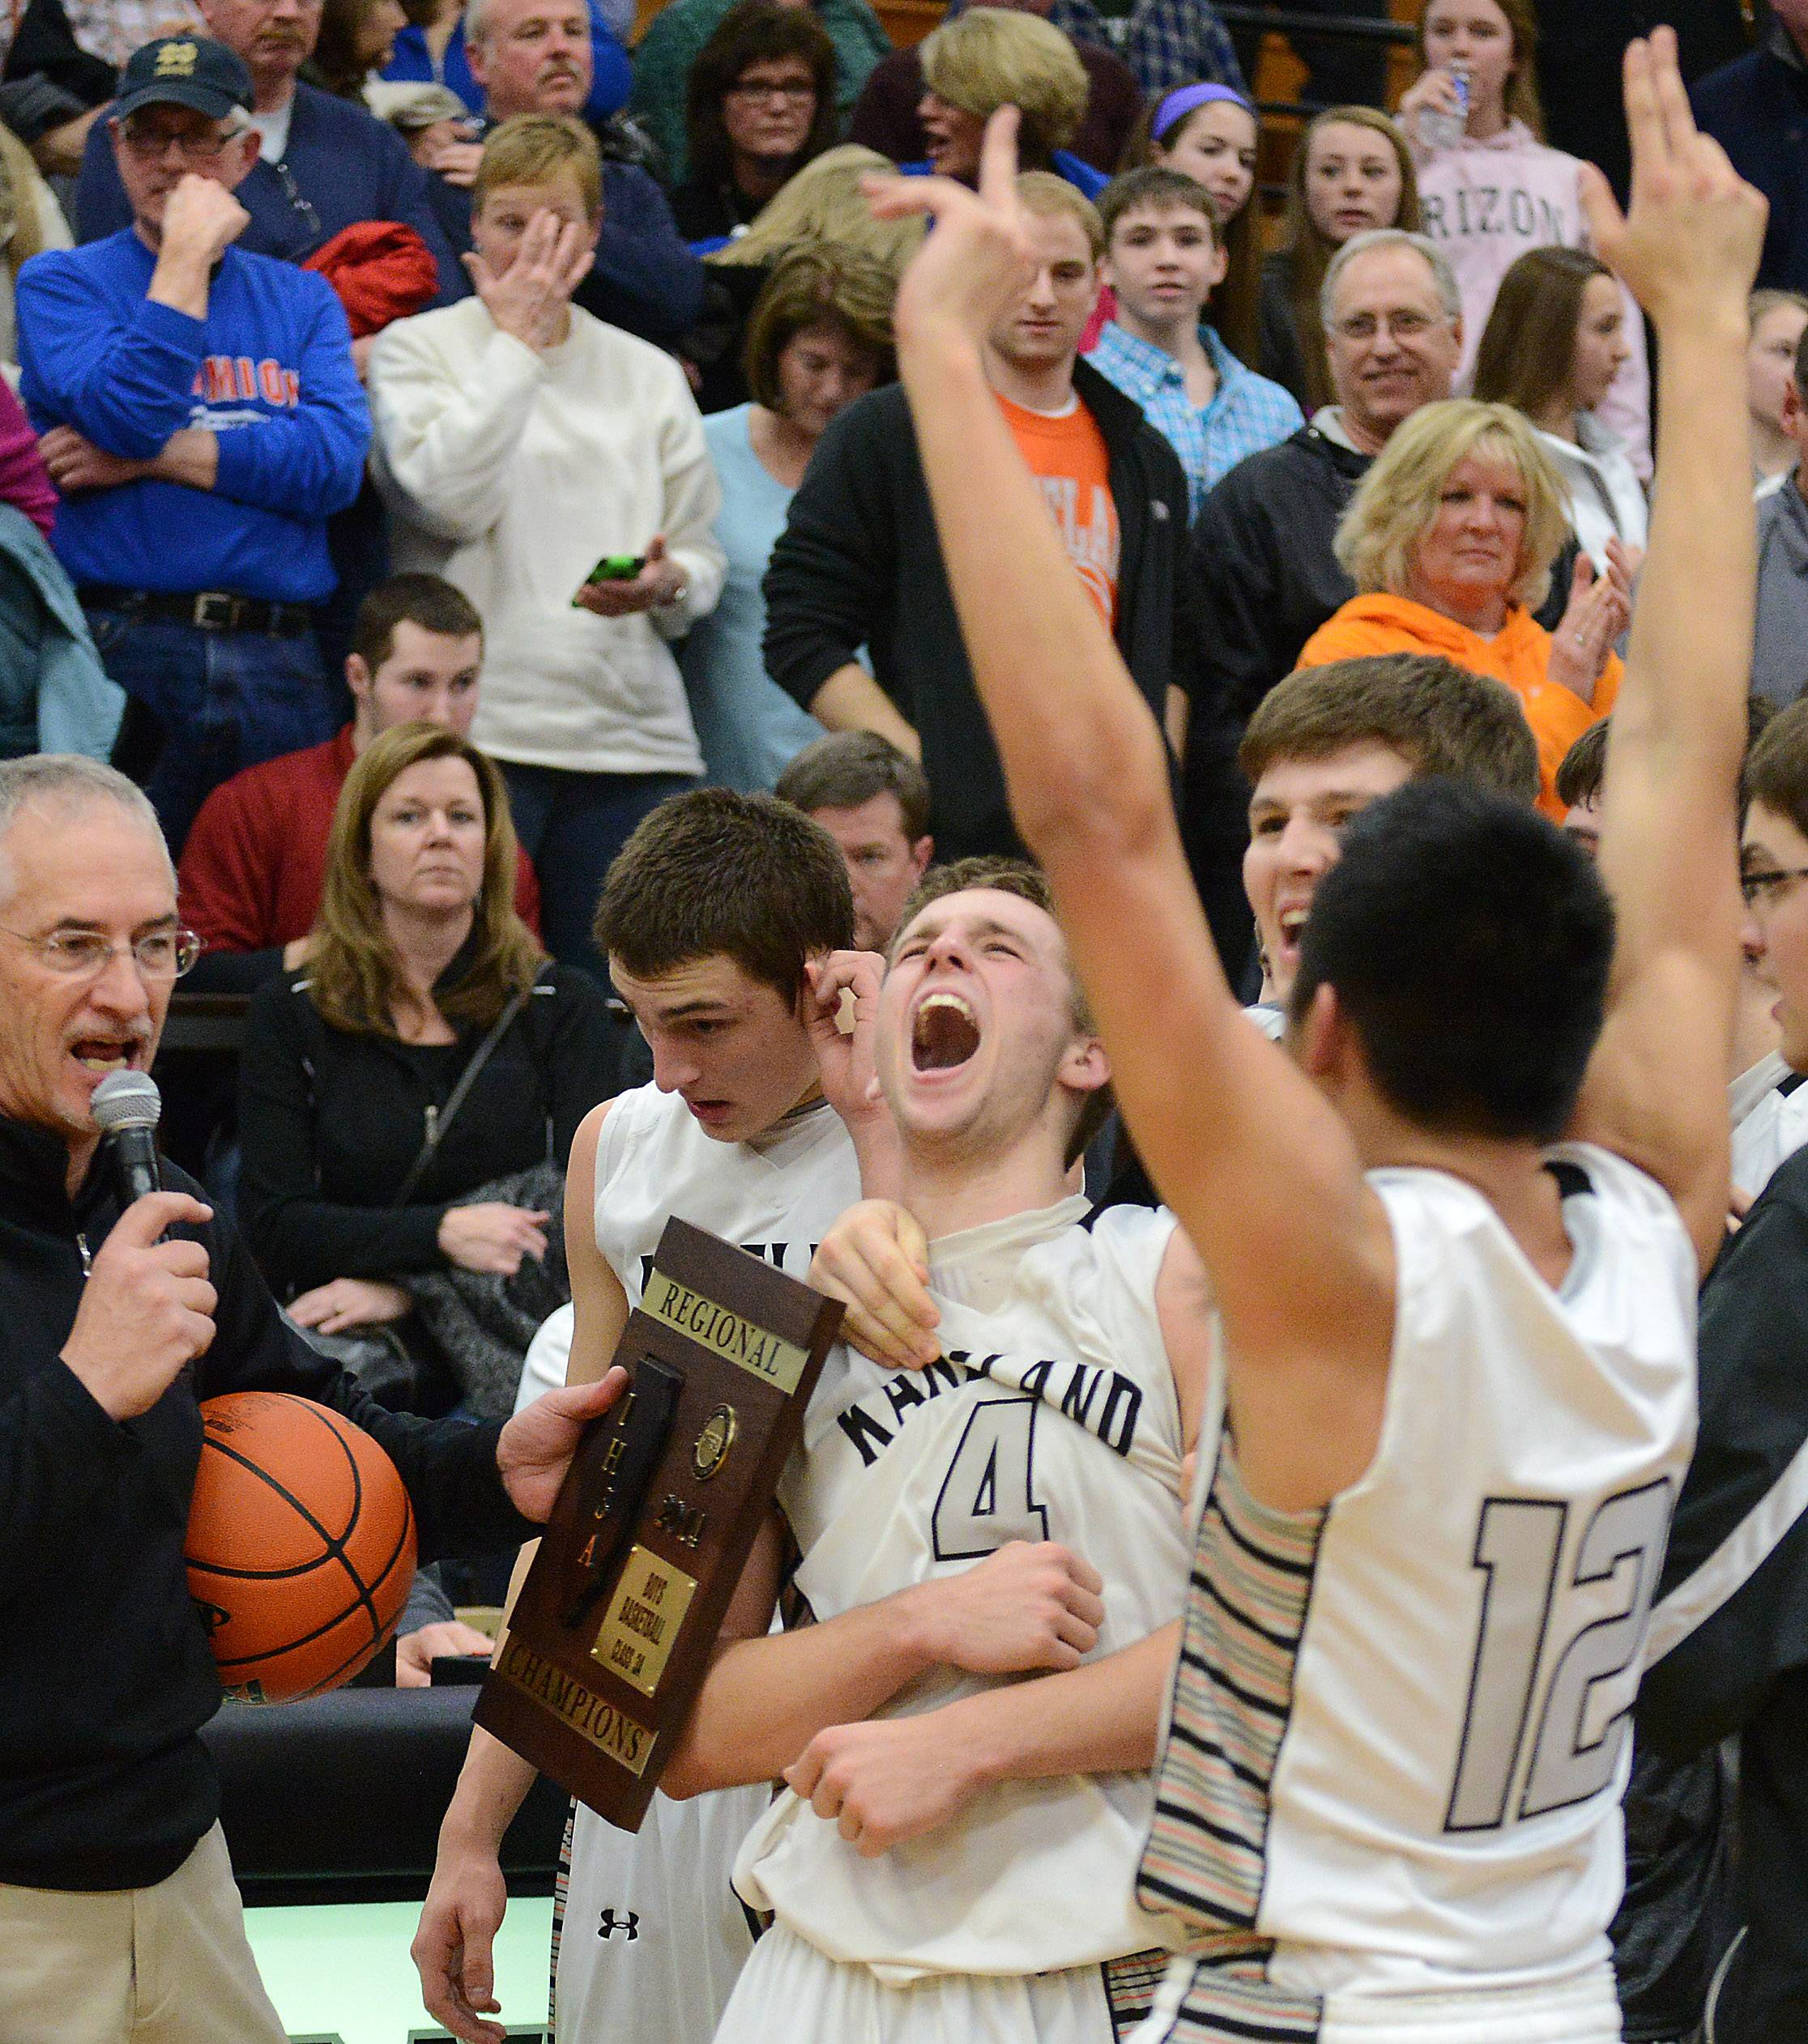 Kaneland players including Drew David (4) and Ben Barnes (12) celebrate as they're awarded the championship plaque after winning Friday's regional title game in Maple Park.